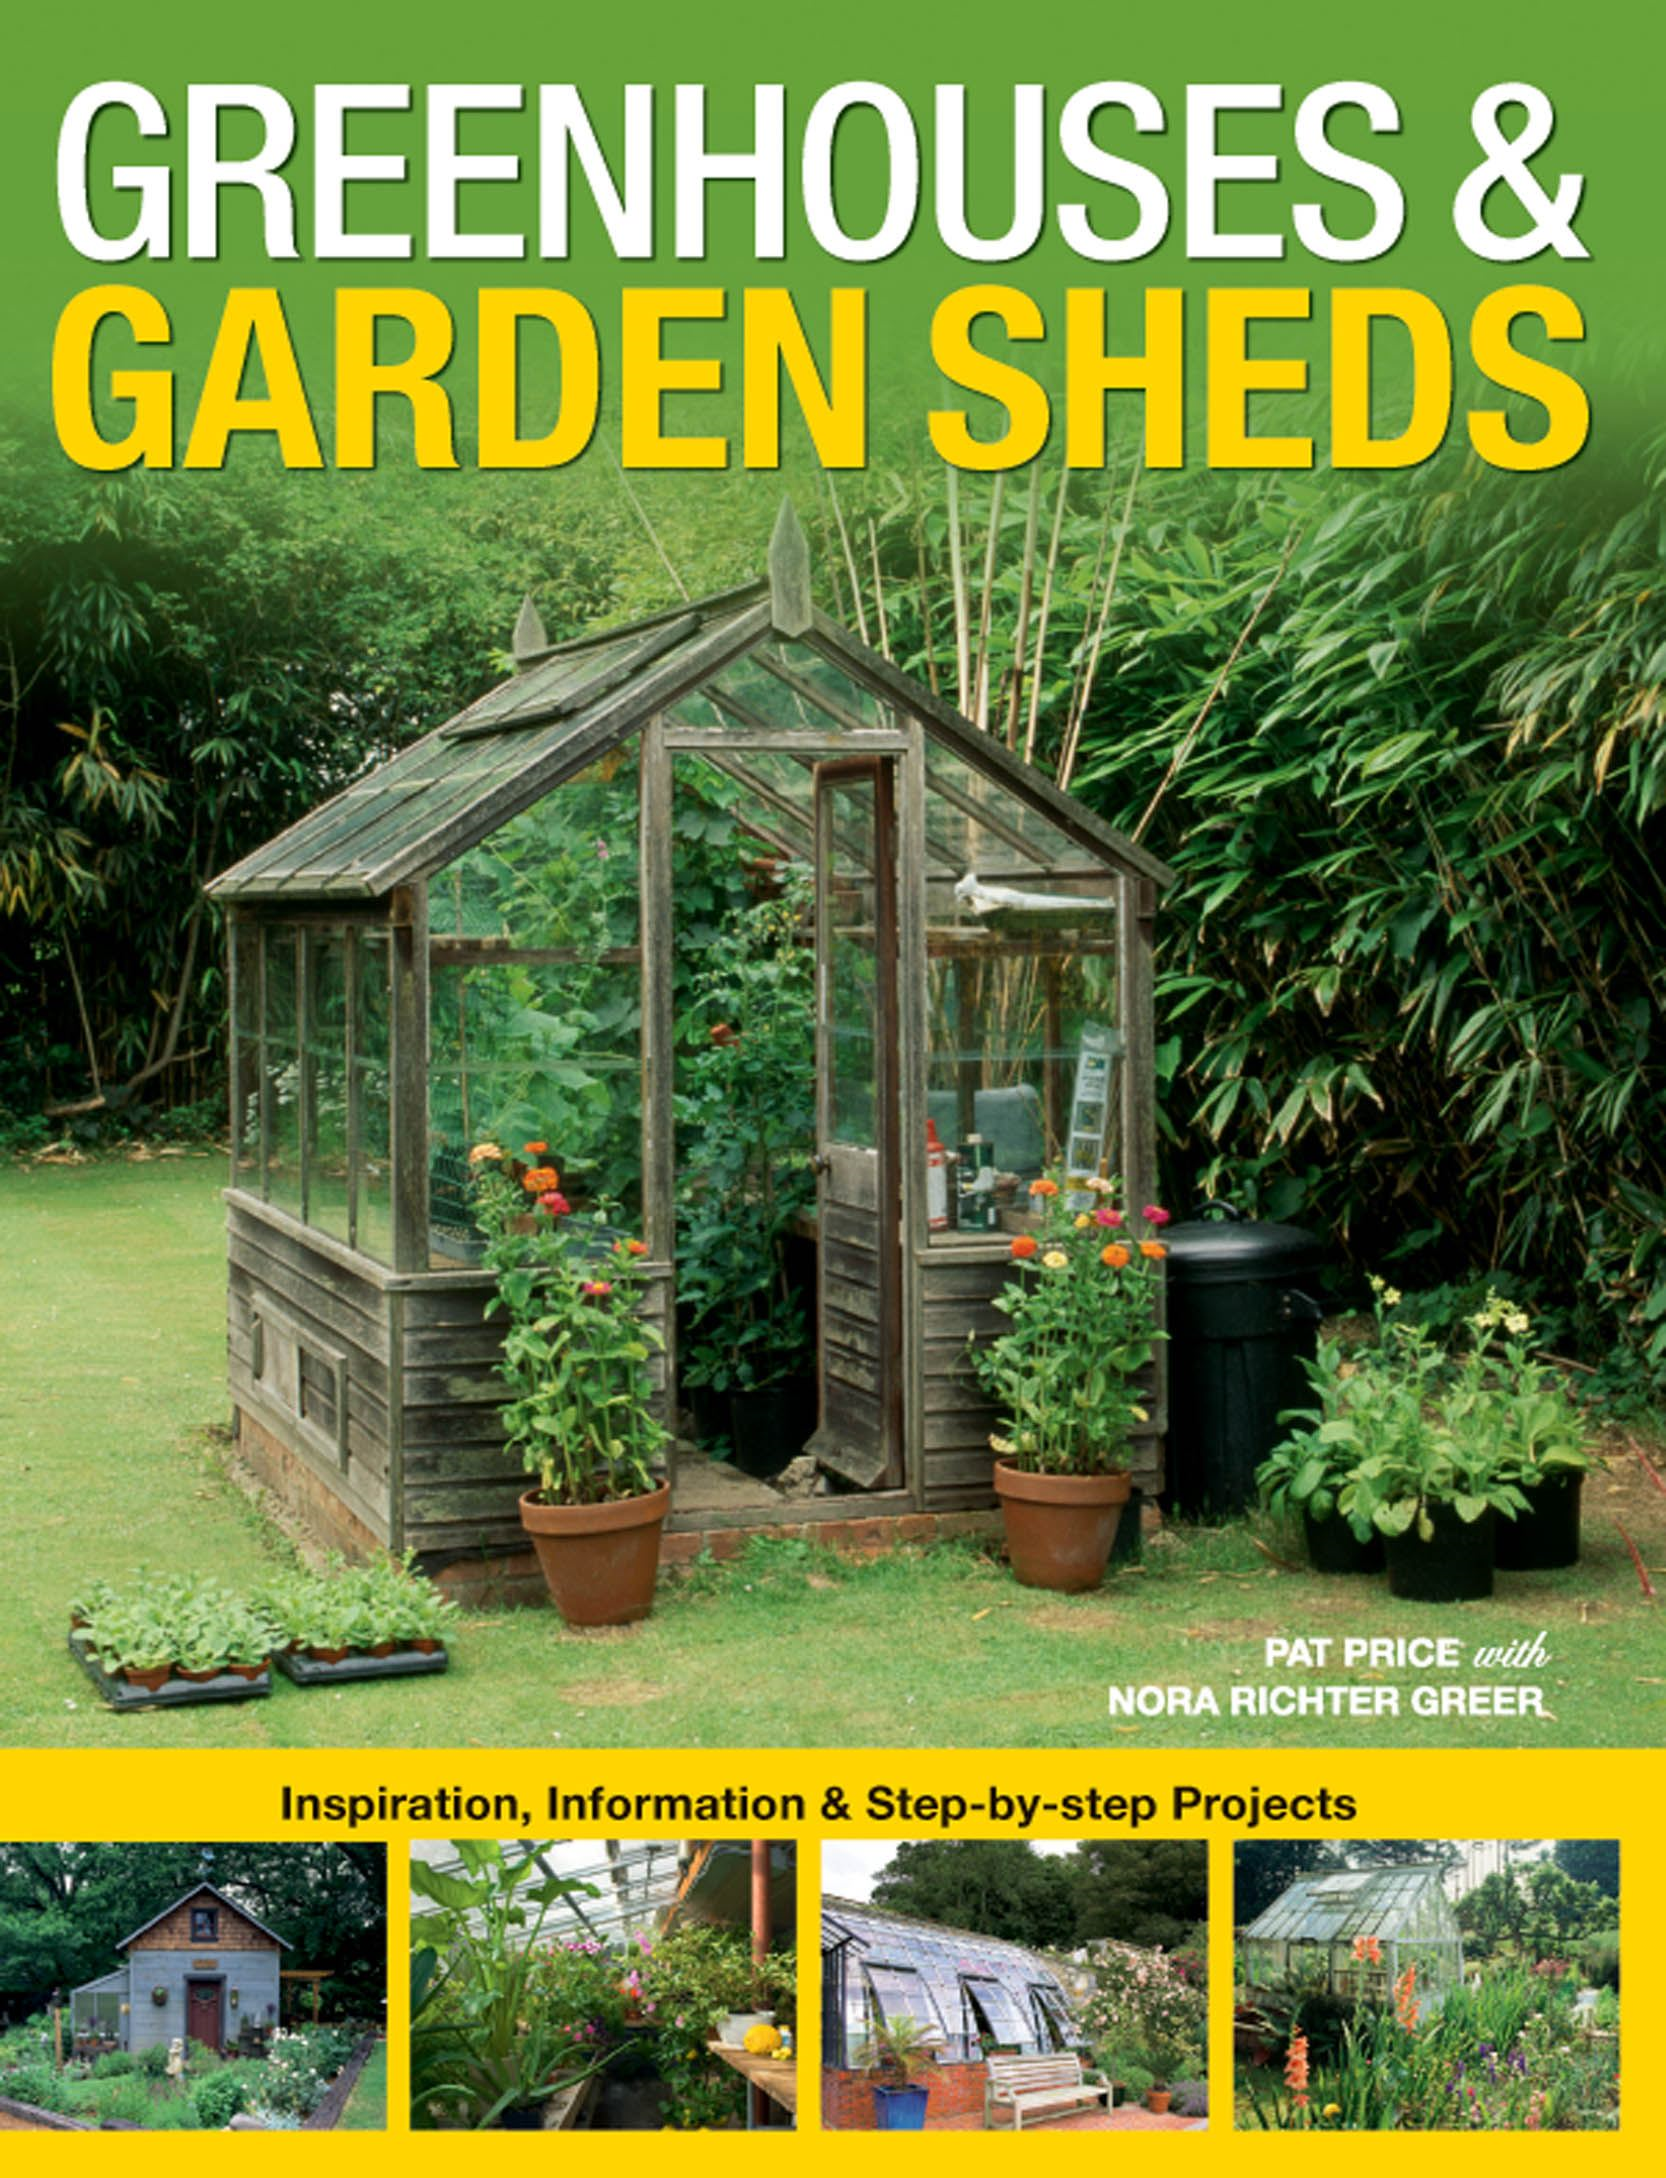 Greenhouses & Garden Sheds: Inspiration, Information & Step-by-Step Projects By: Pat Price,Nora Richter Greer